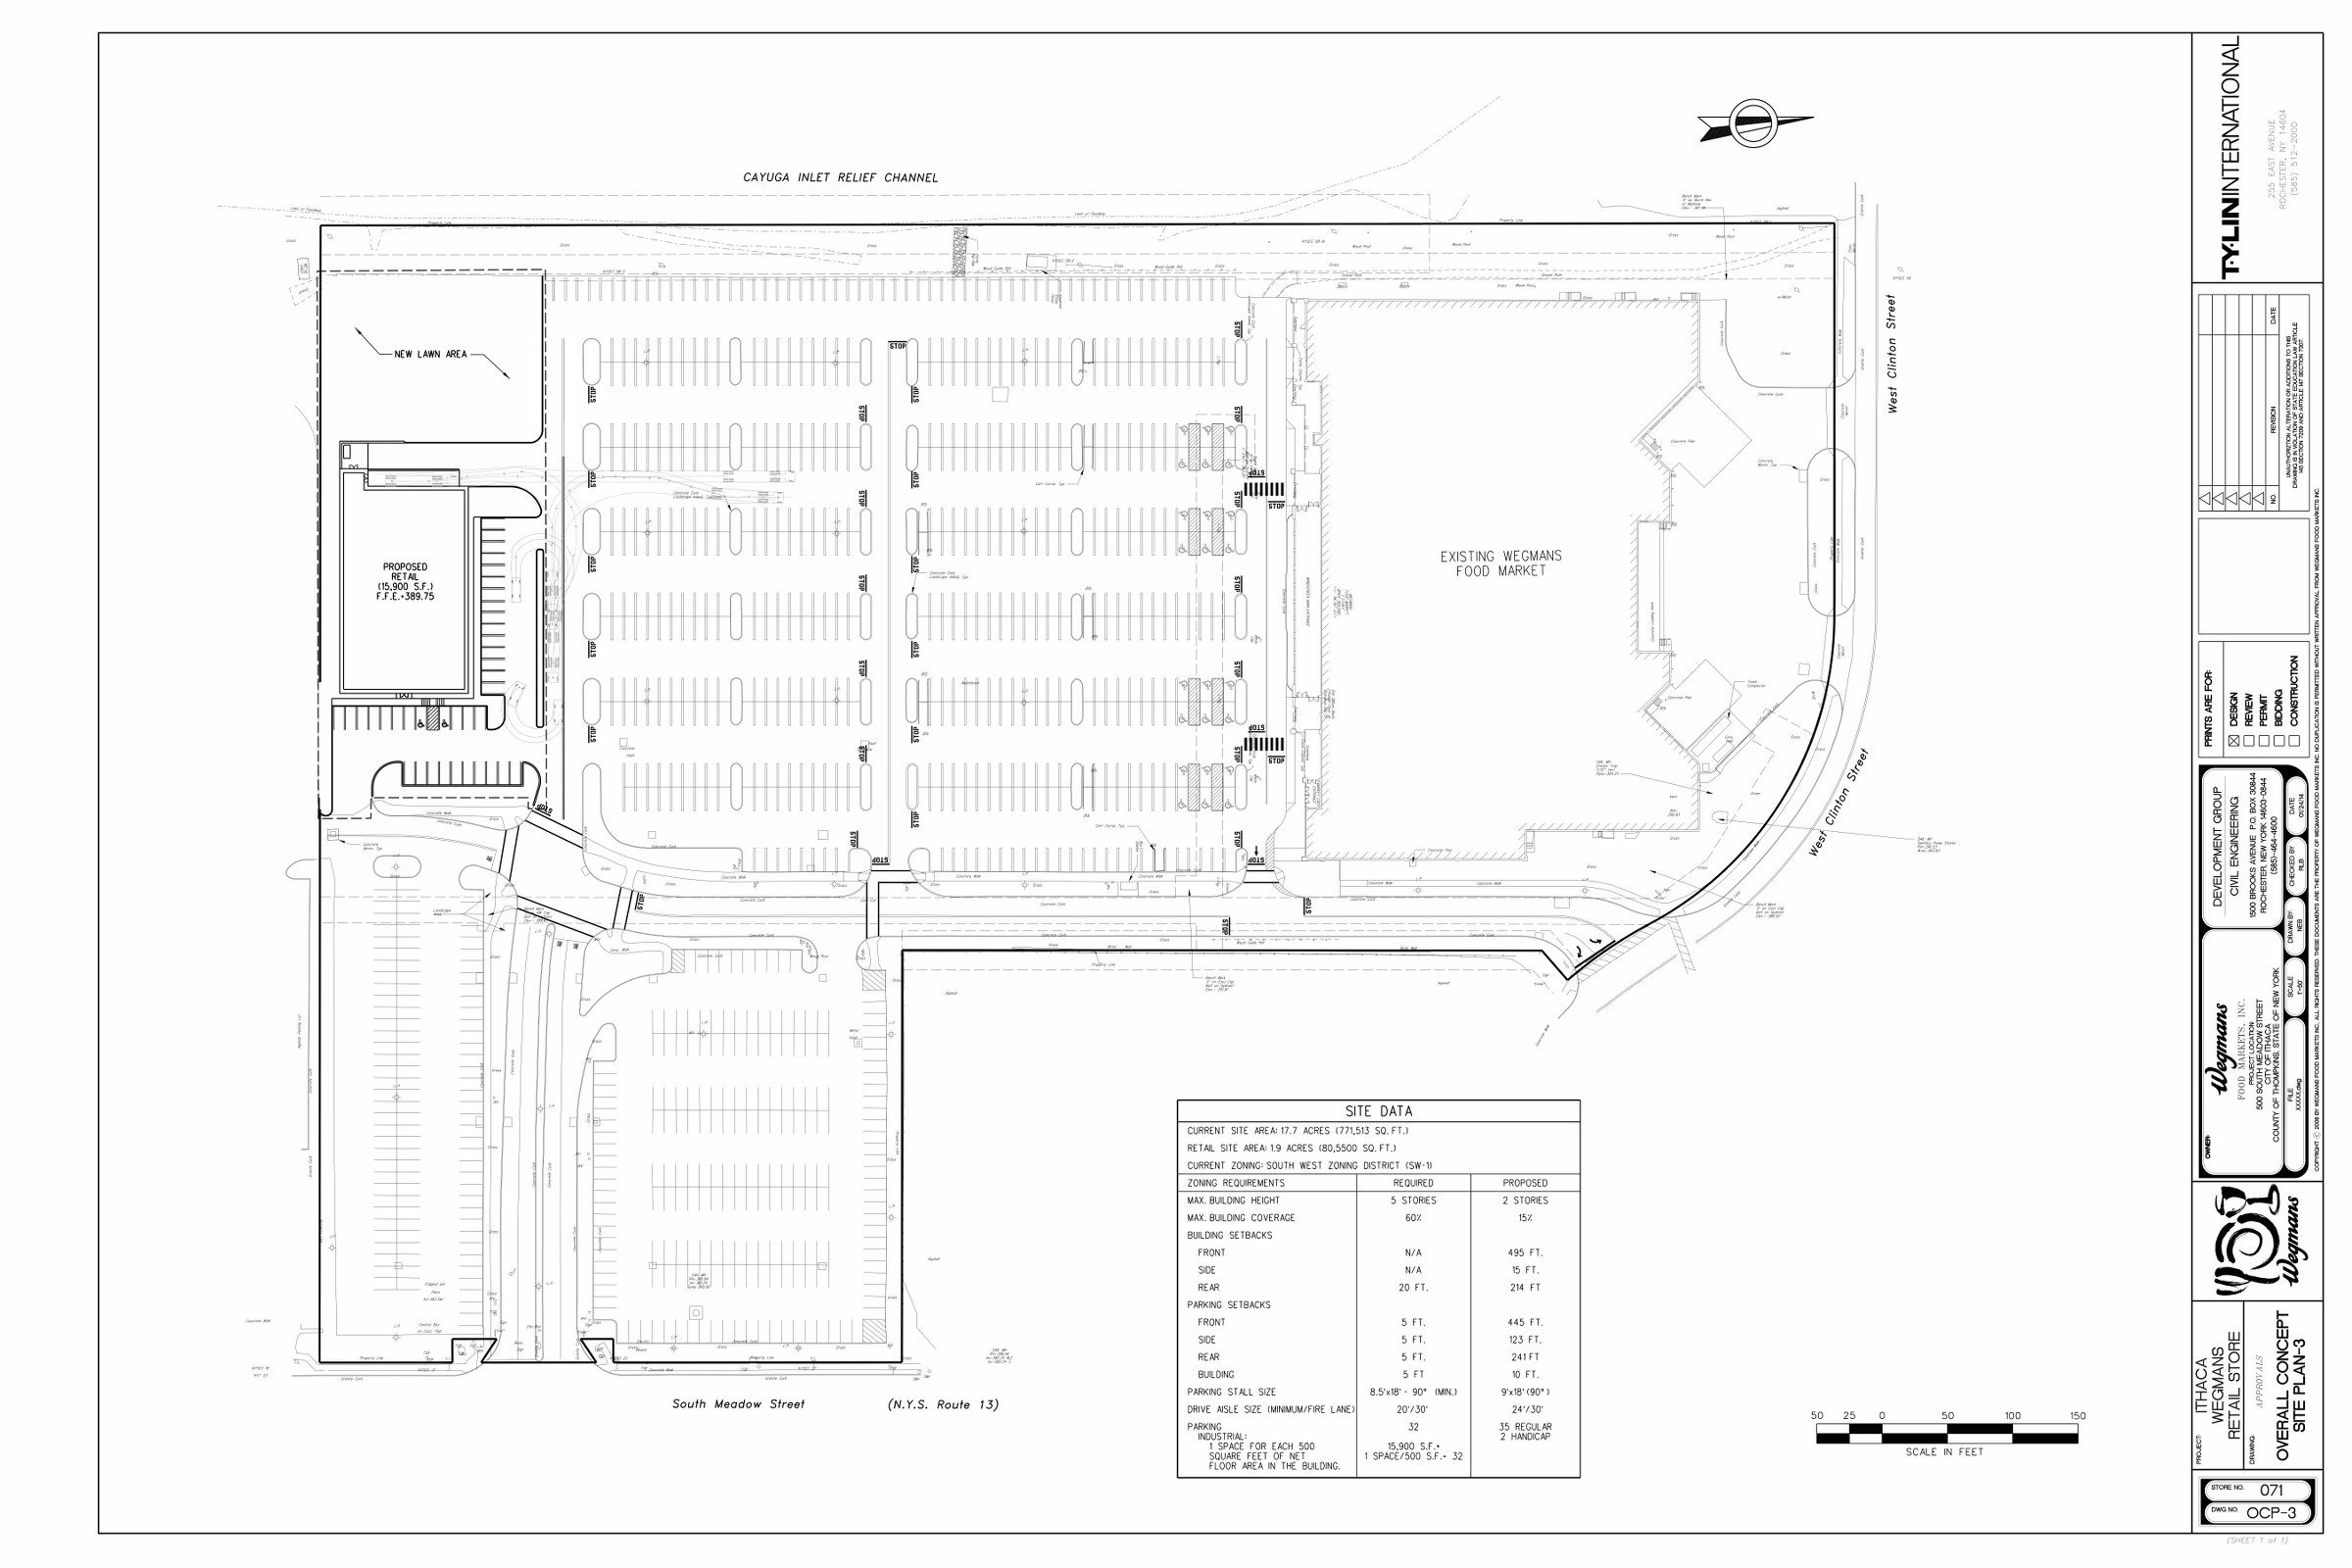 free floor layout of a liquor store Liquor store floor plan security plan ashley barker introduction to security instructor collins november 9, 2012 this assignment will be on the clifton liquor store located in clifton, colorado.